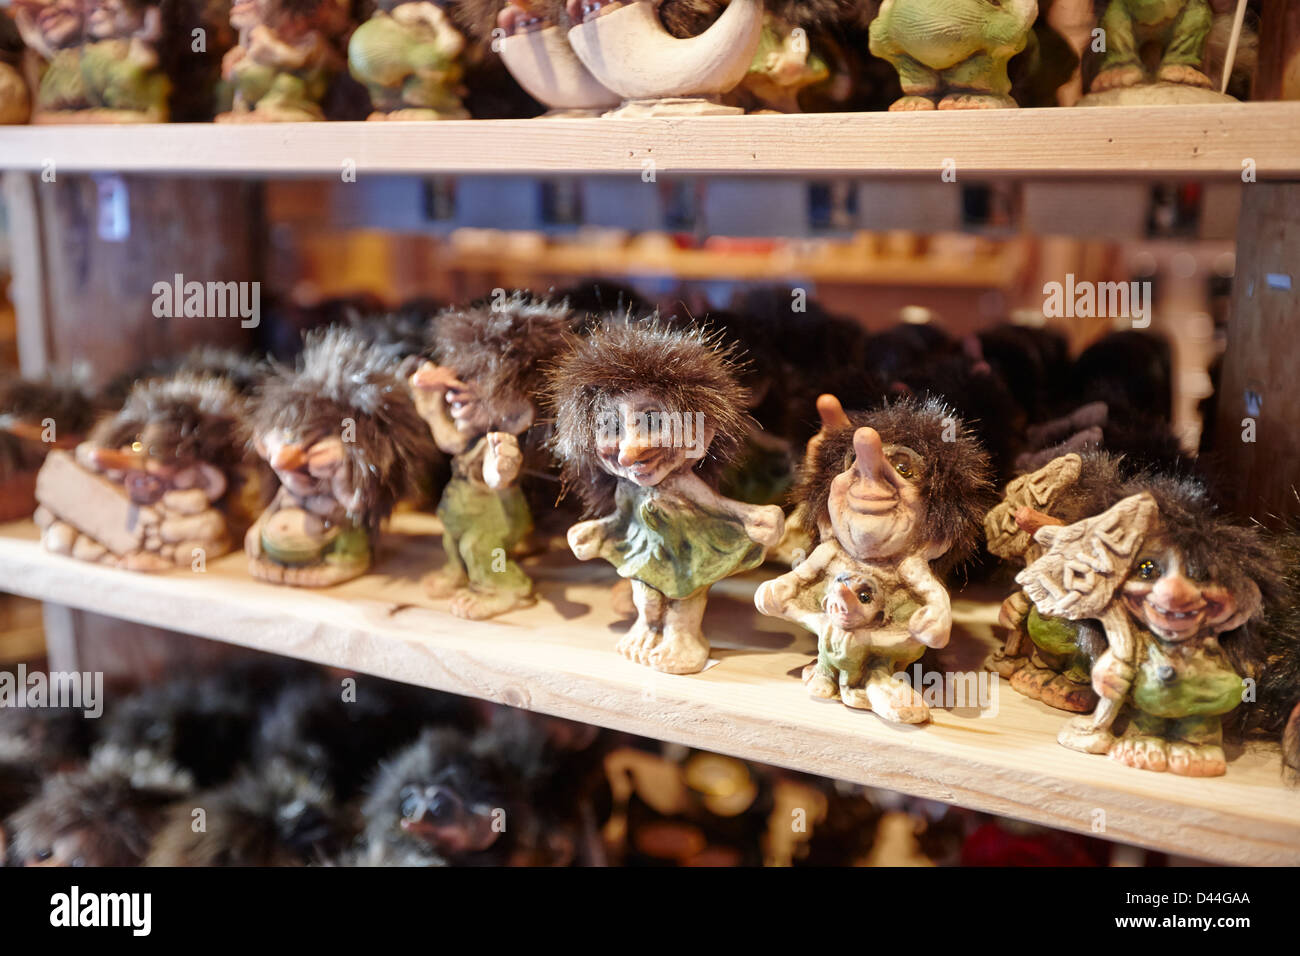 Norwegian Trolls Souvenirs For Sale In A Gift Shoptromso Troms Norway Stock Photo Alamy